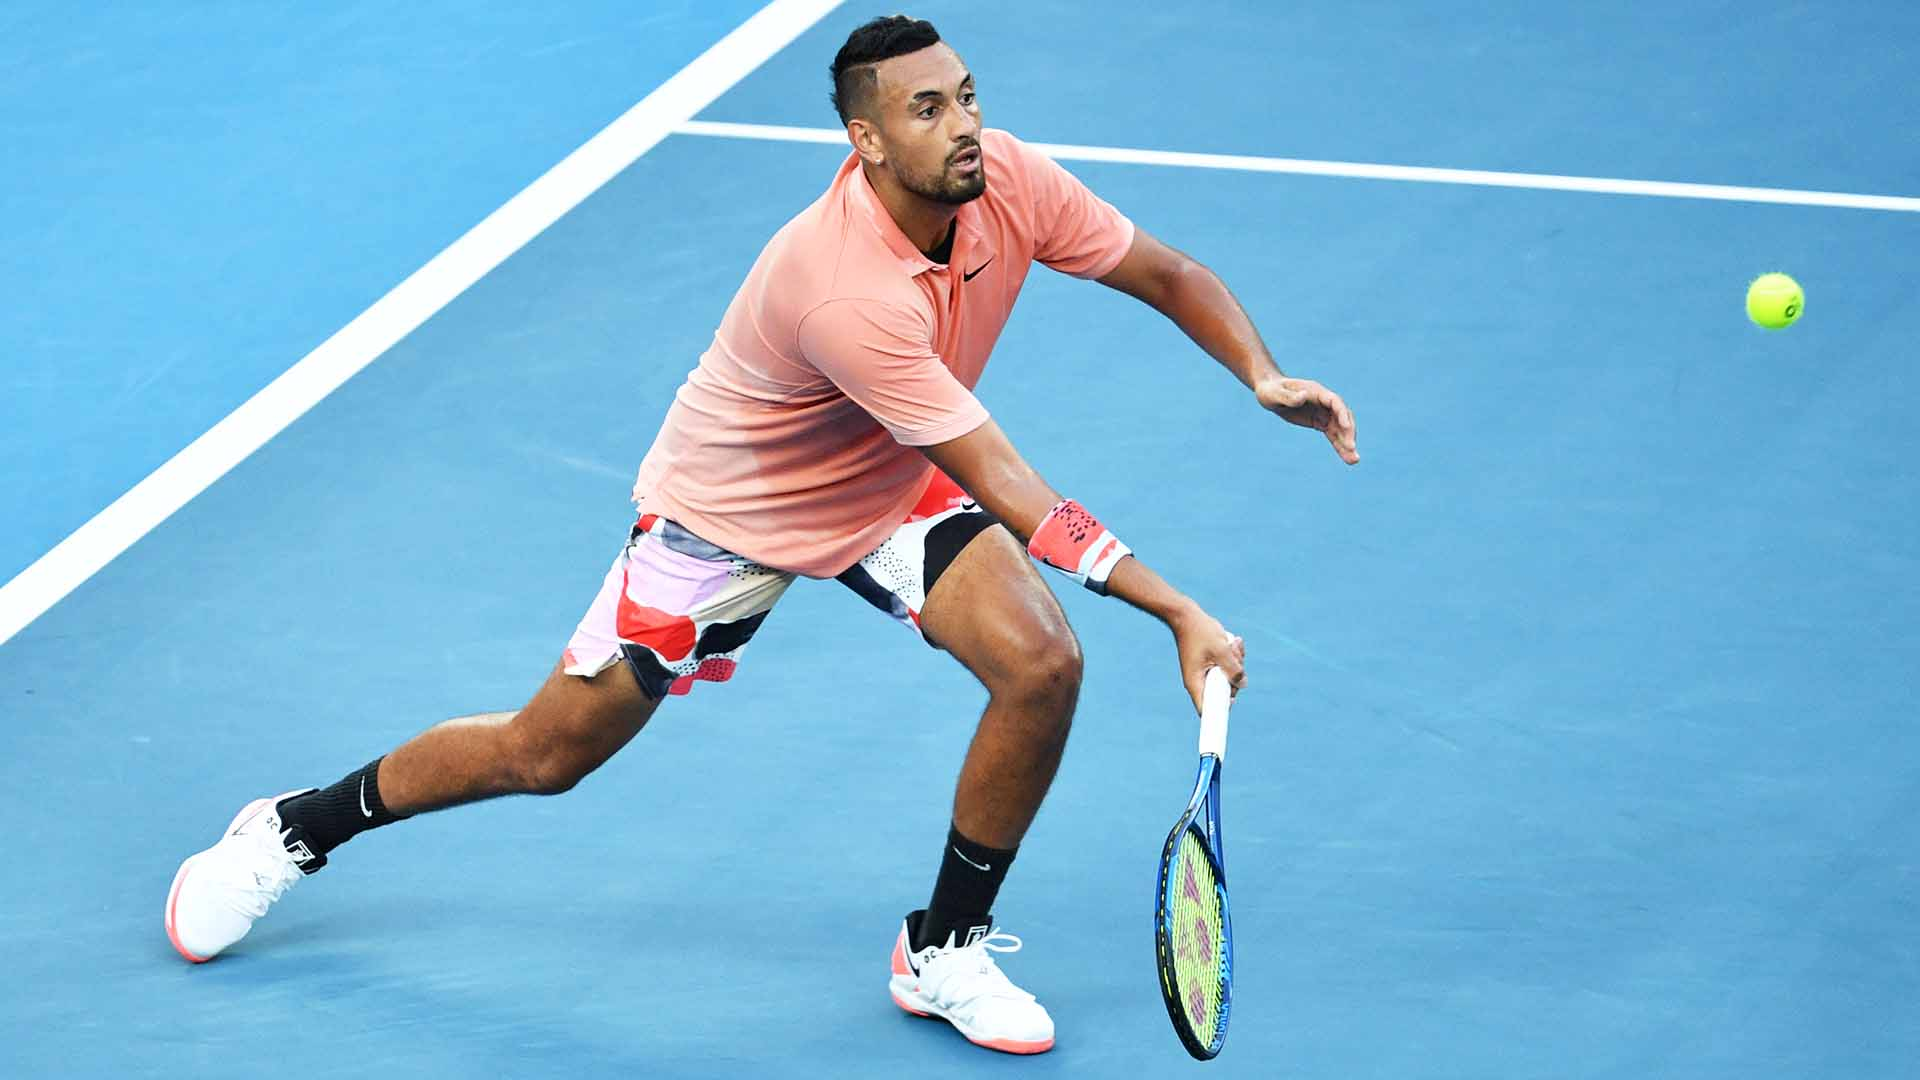 <a href='https://www.atptour.com/en/players/nick-kyrgios/ke17/overview'>Nick Kyrgios</a> is the 23rd seed at the <a href='https://www.atptour.com/en/tournaments/australian-open/580/overview'>Australian Open</a>.